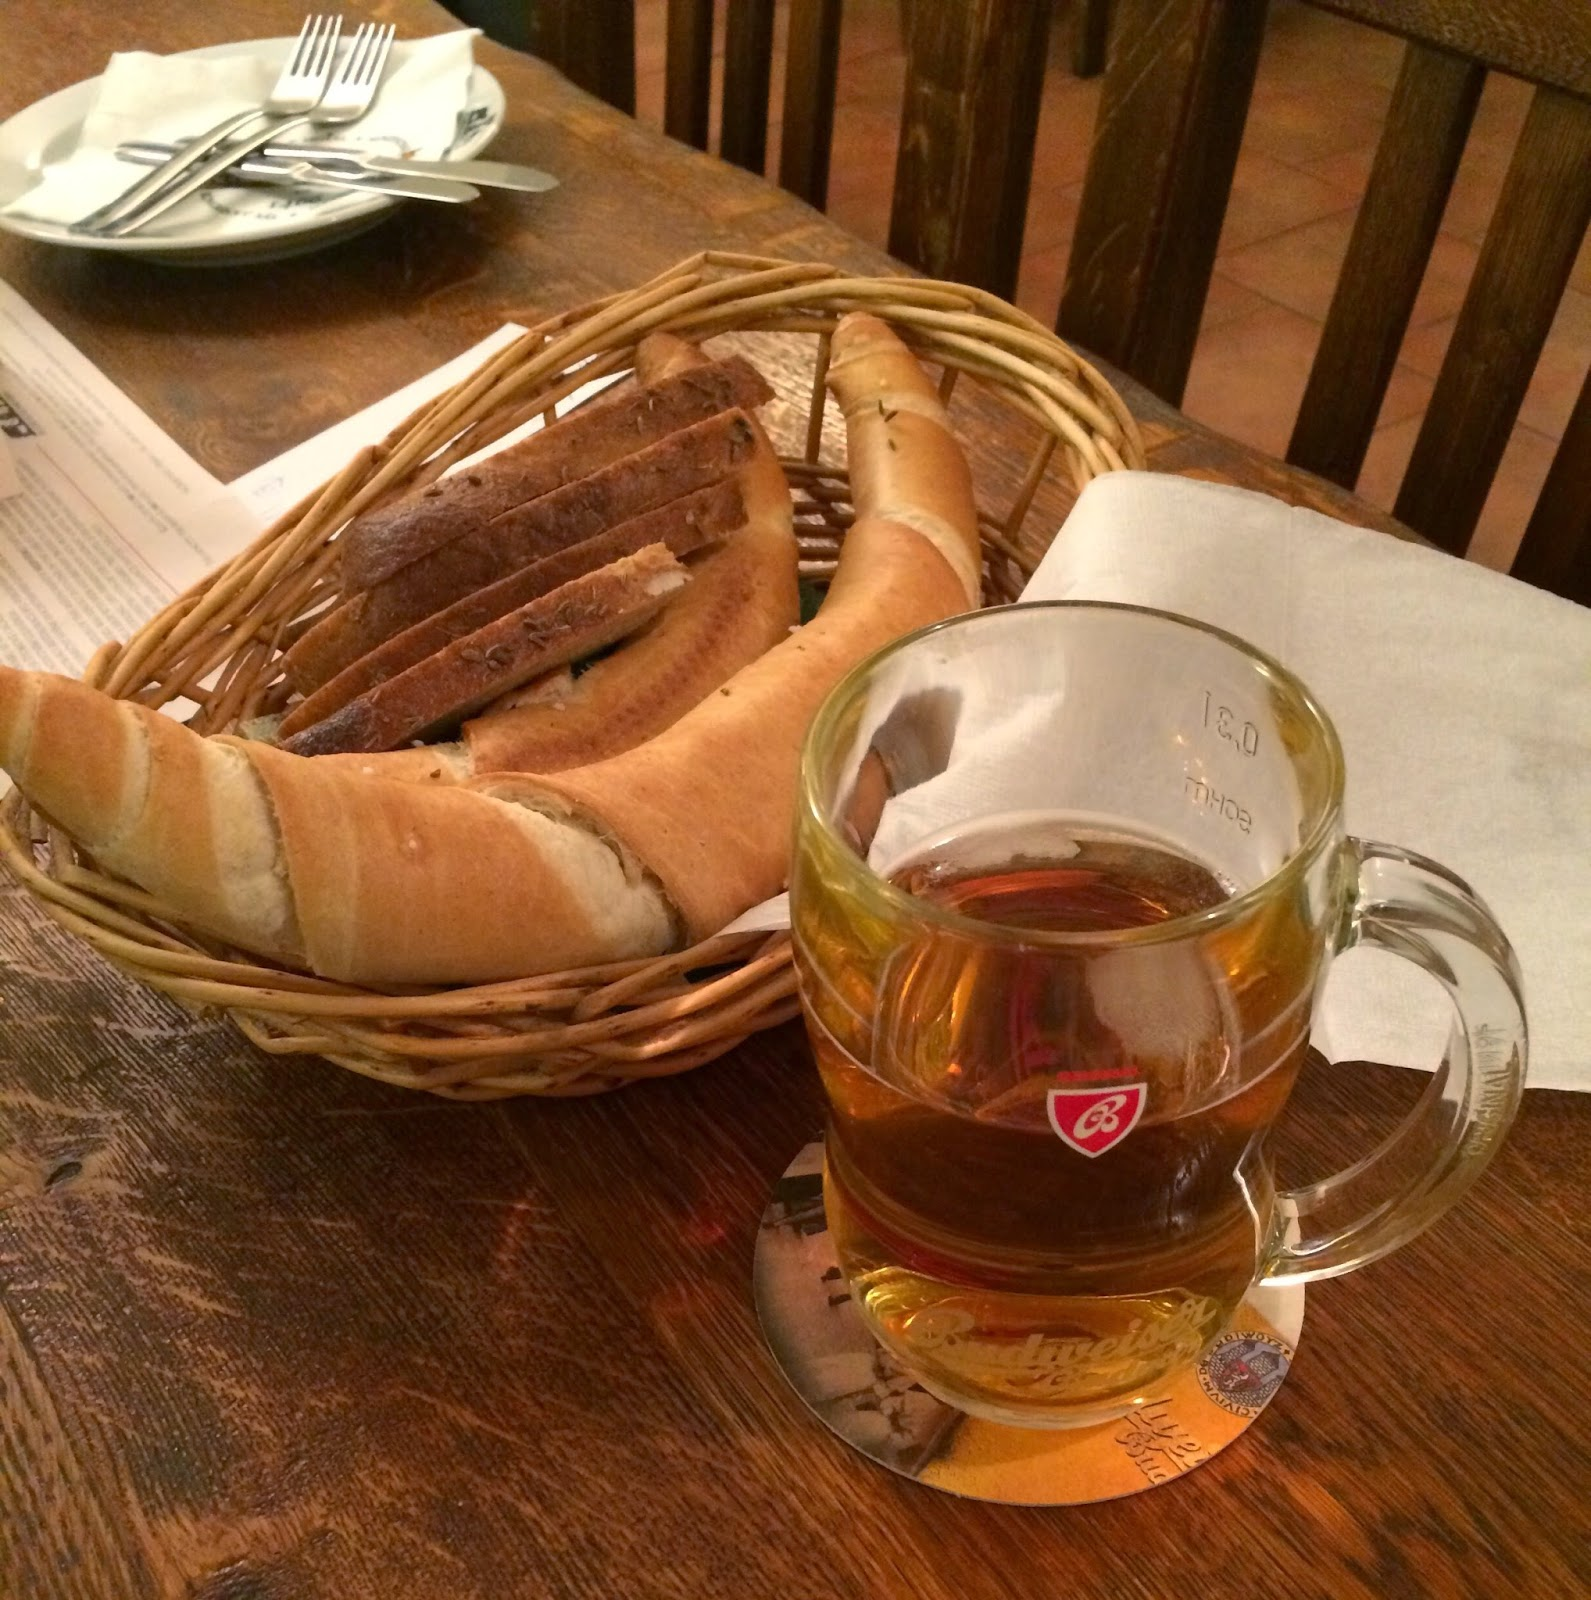 european bread and beer